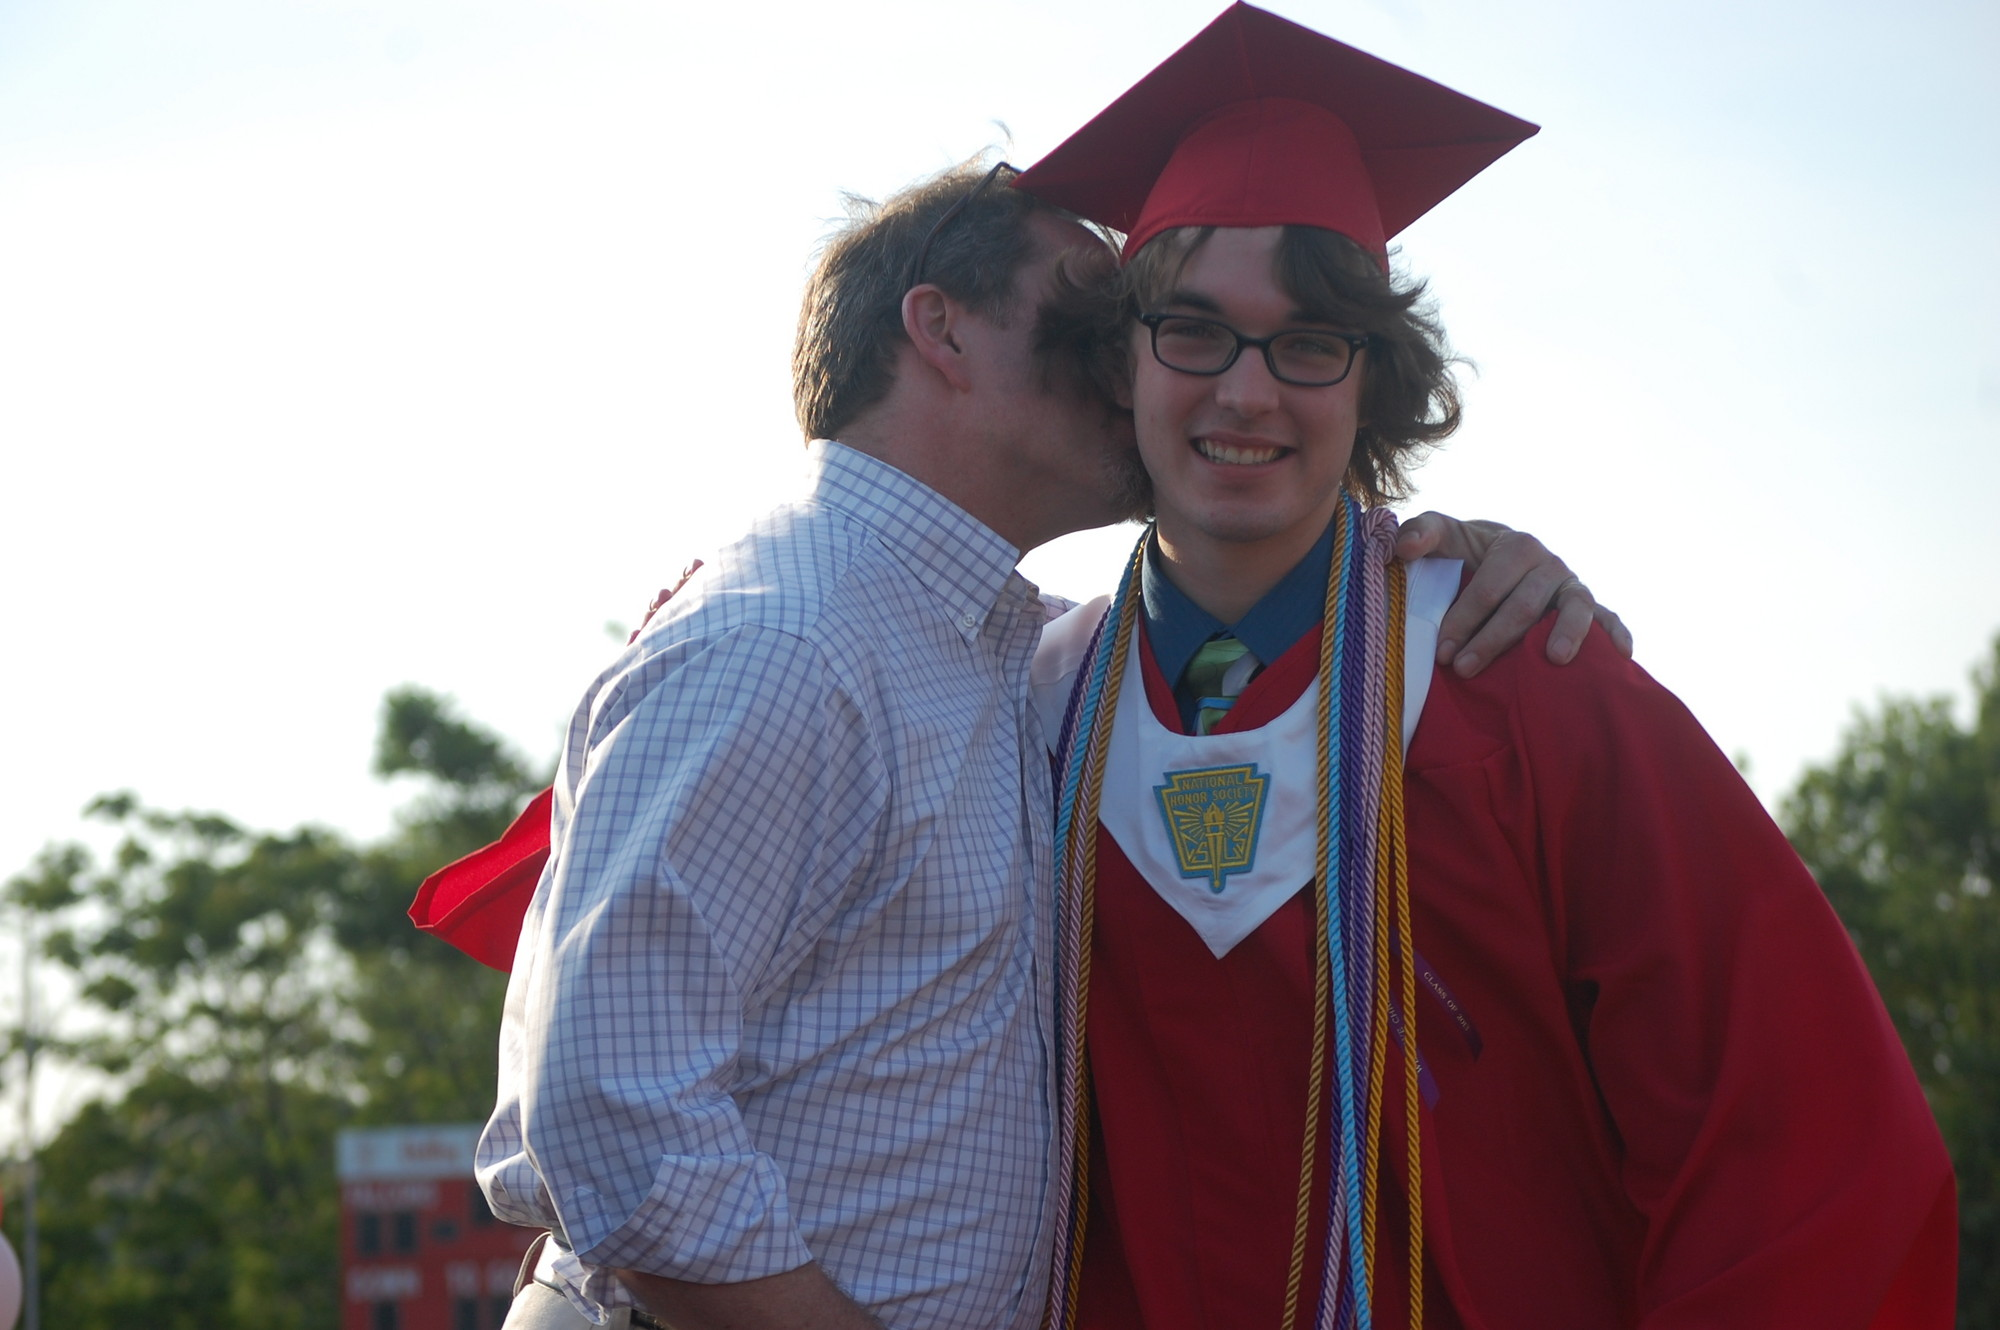 Graduate Sean Wraith got a big congratulations from his father, Ian.